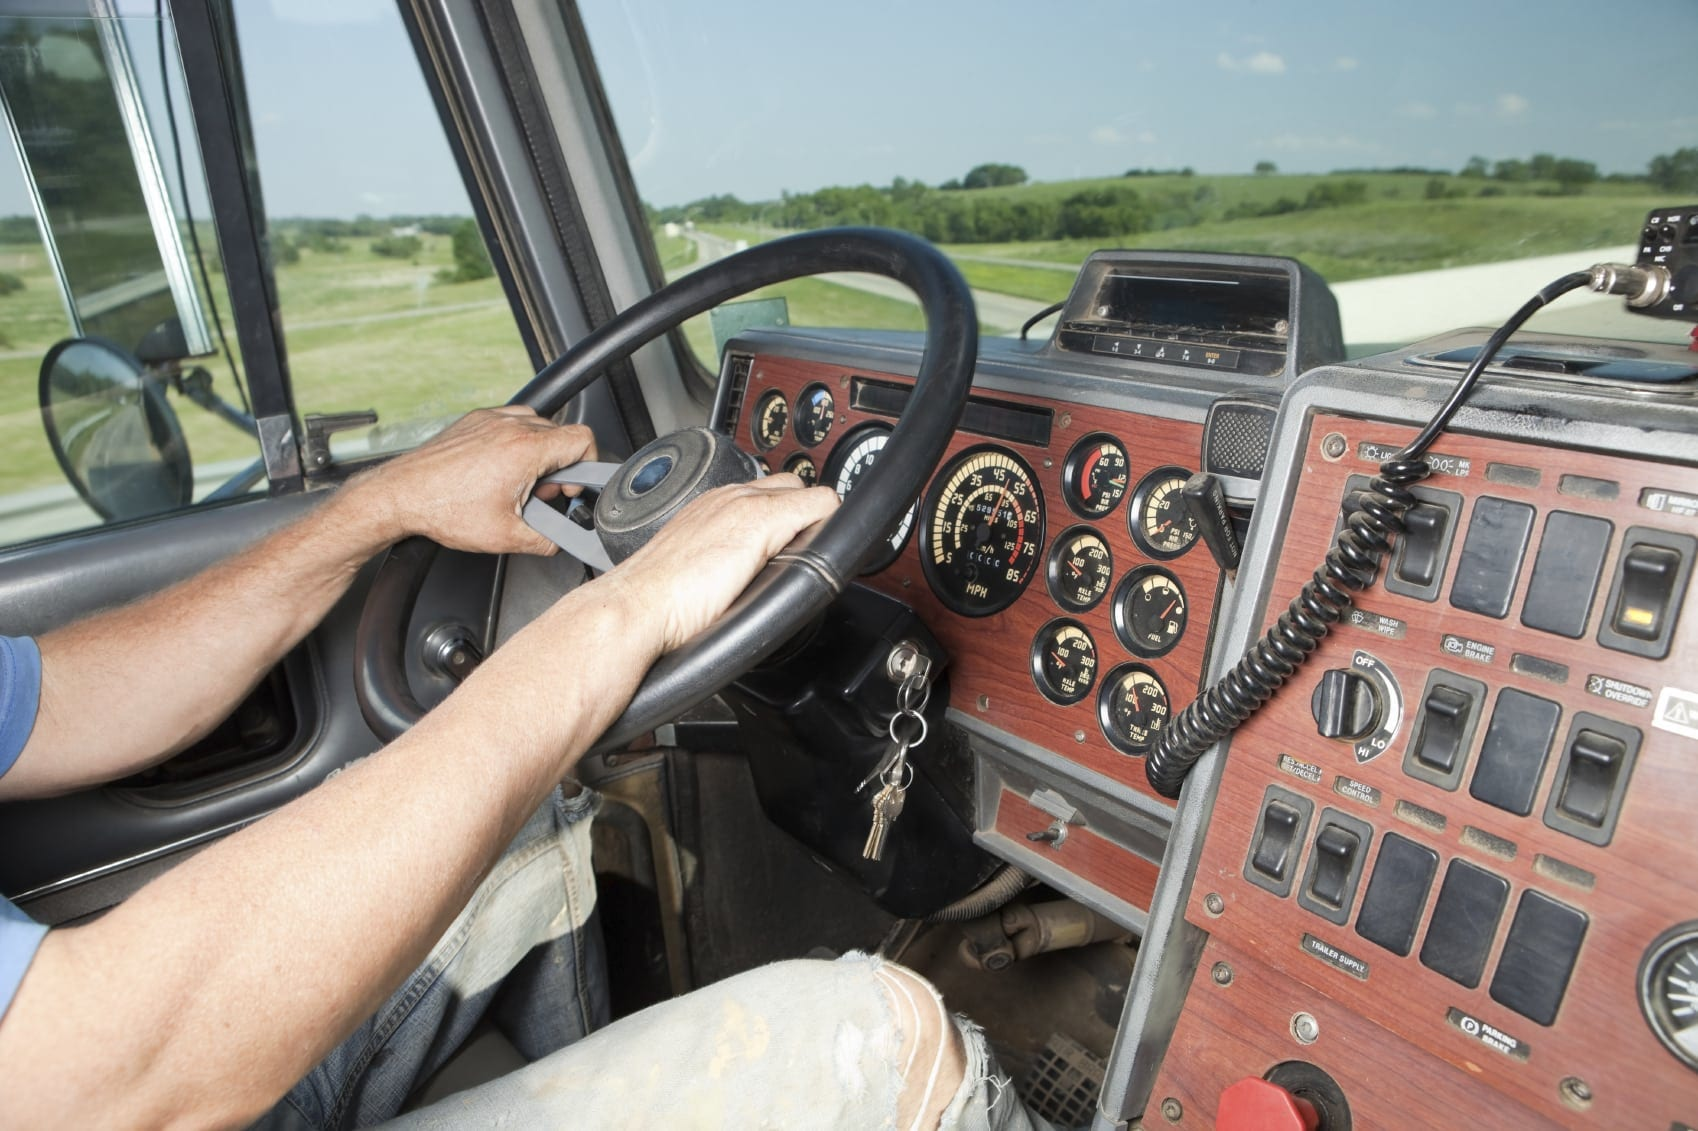 Interior Photo Of The Cab Of An 18-wheeler Truck